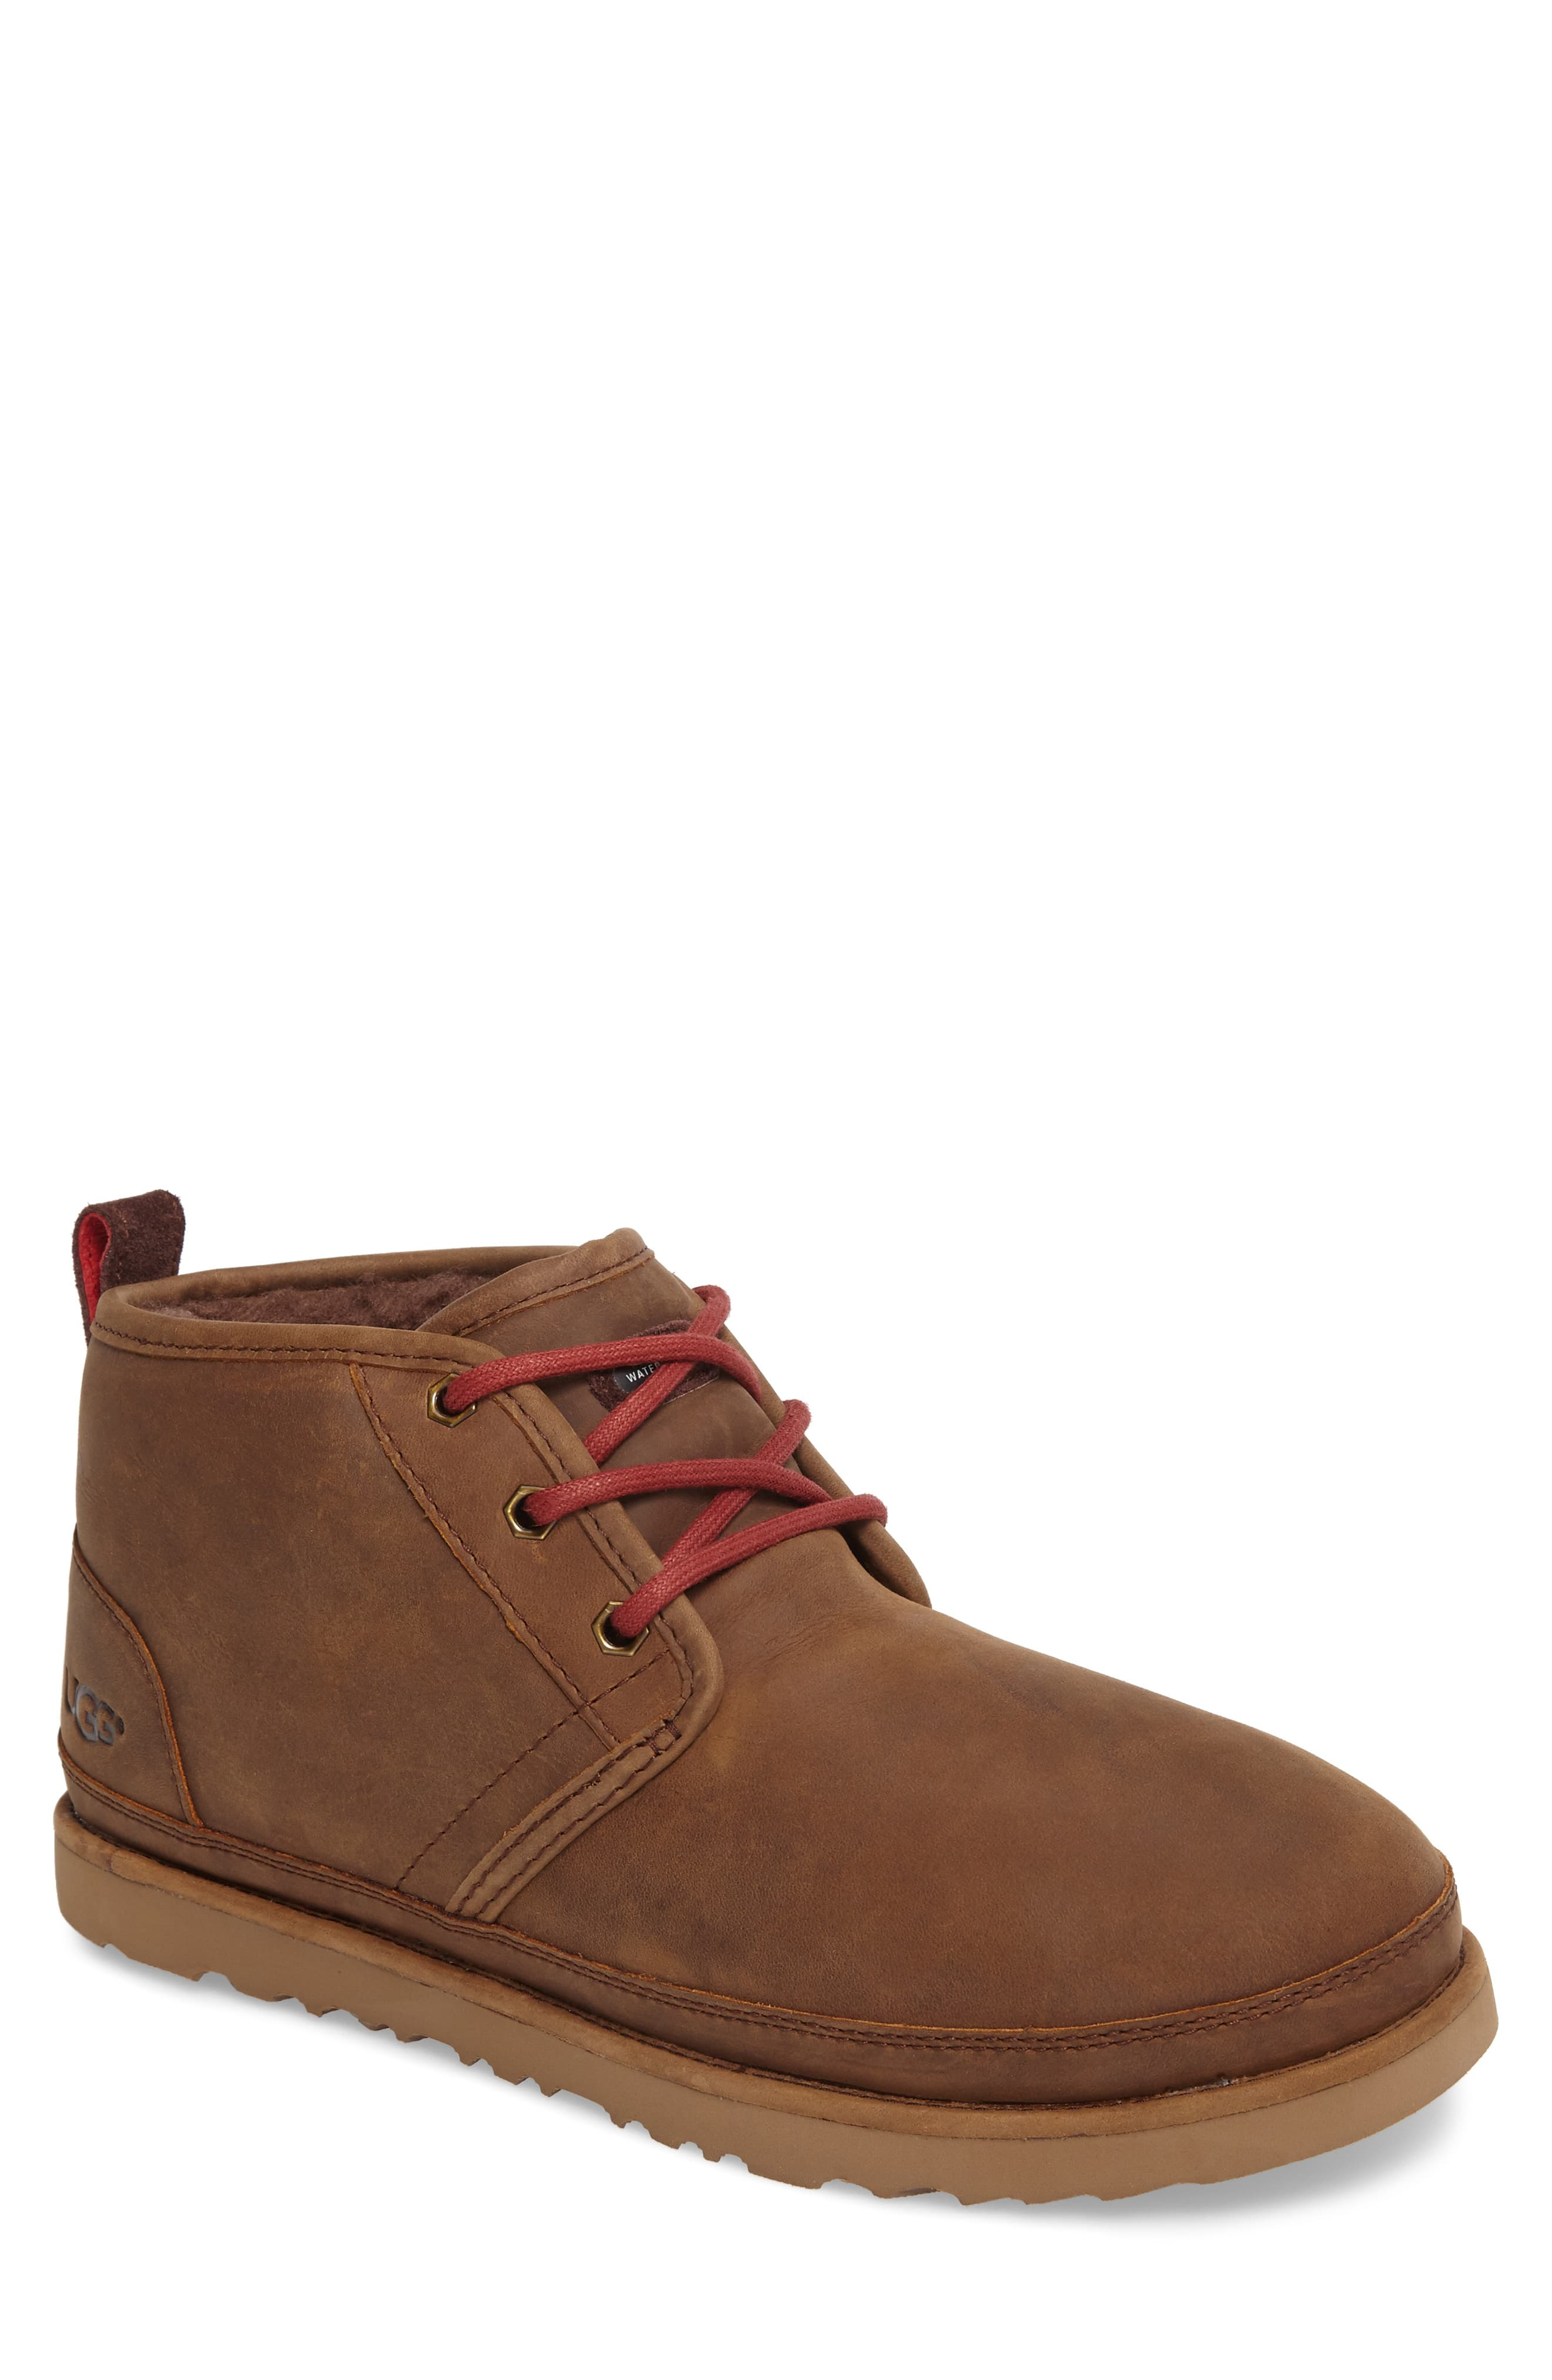 dba7f015867 Men's Ugg Neumel Waterproof Chukka Boot, Size 5 M – Brown | The ...